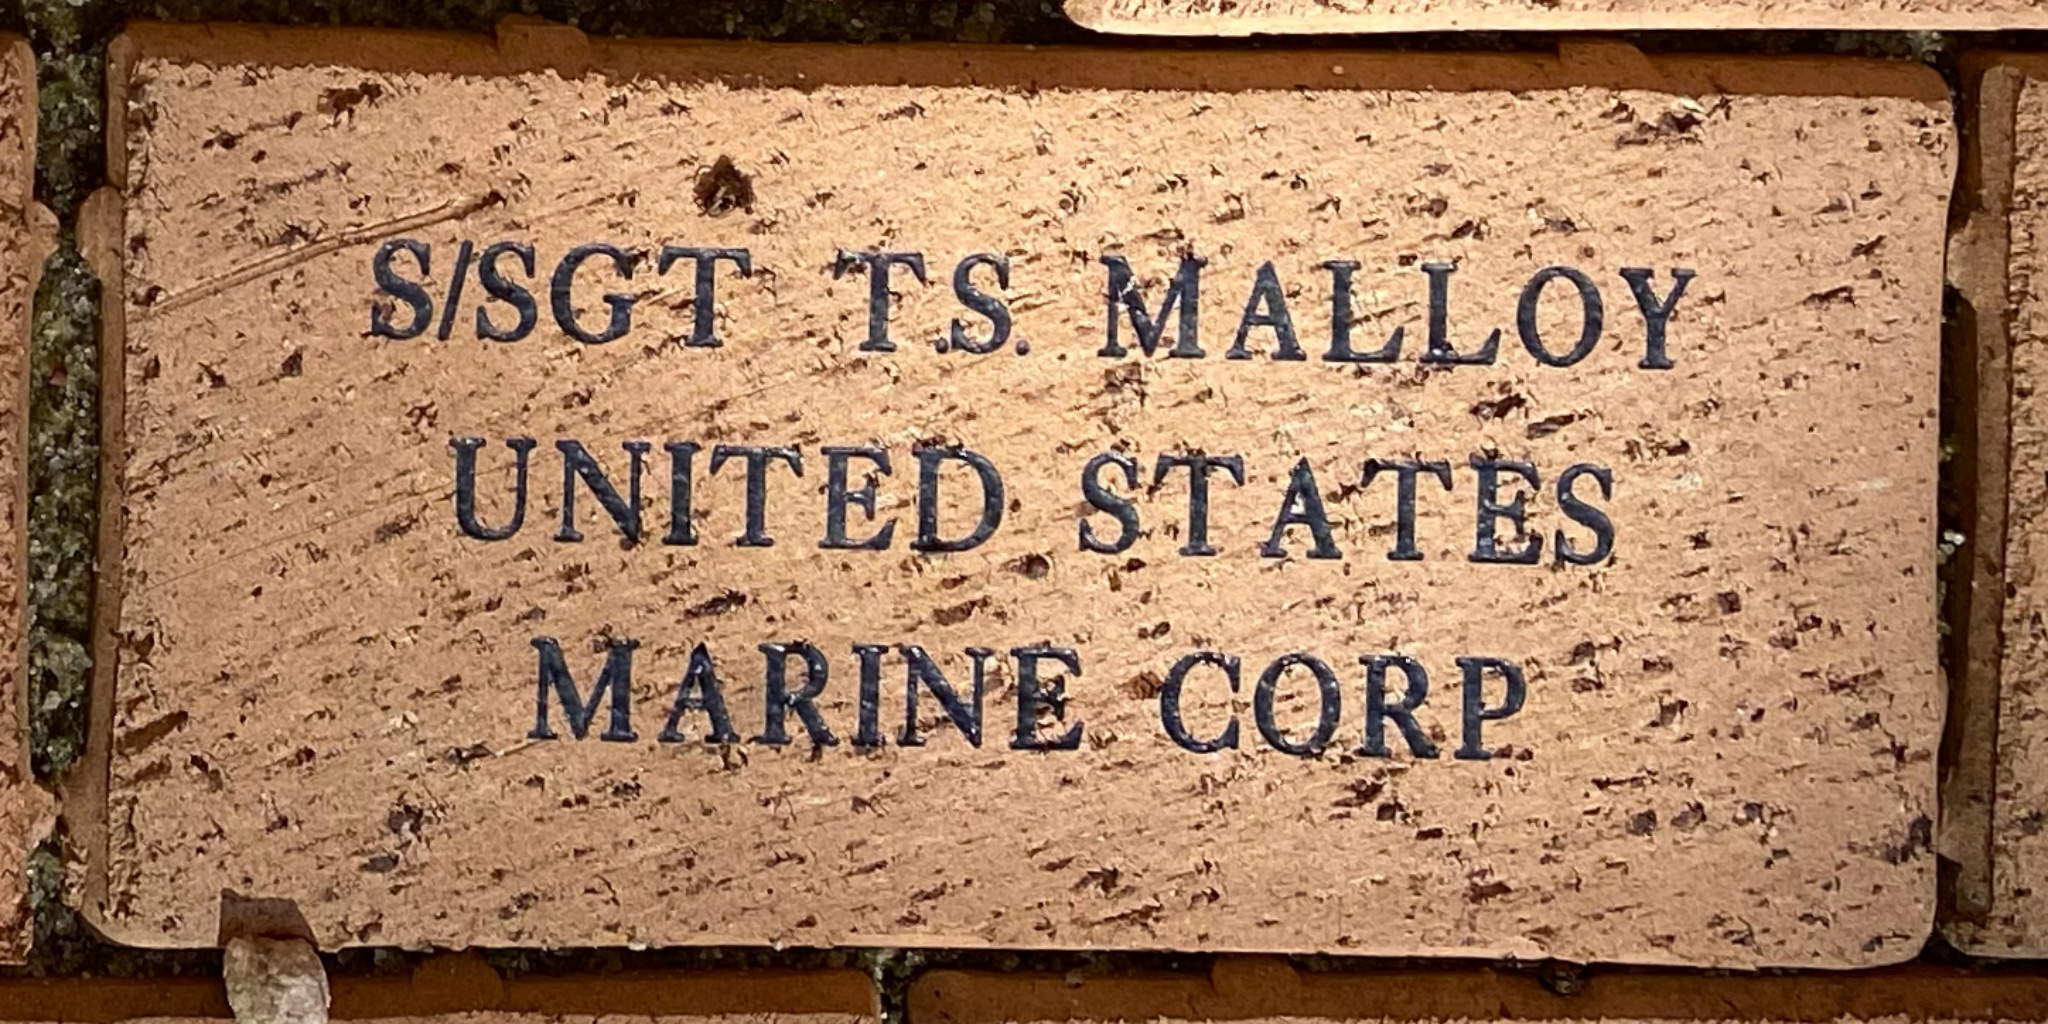 S/SGT T.S. MALLOY UNITED STATES MARINE CORP